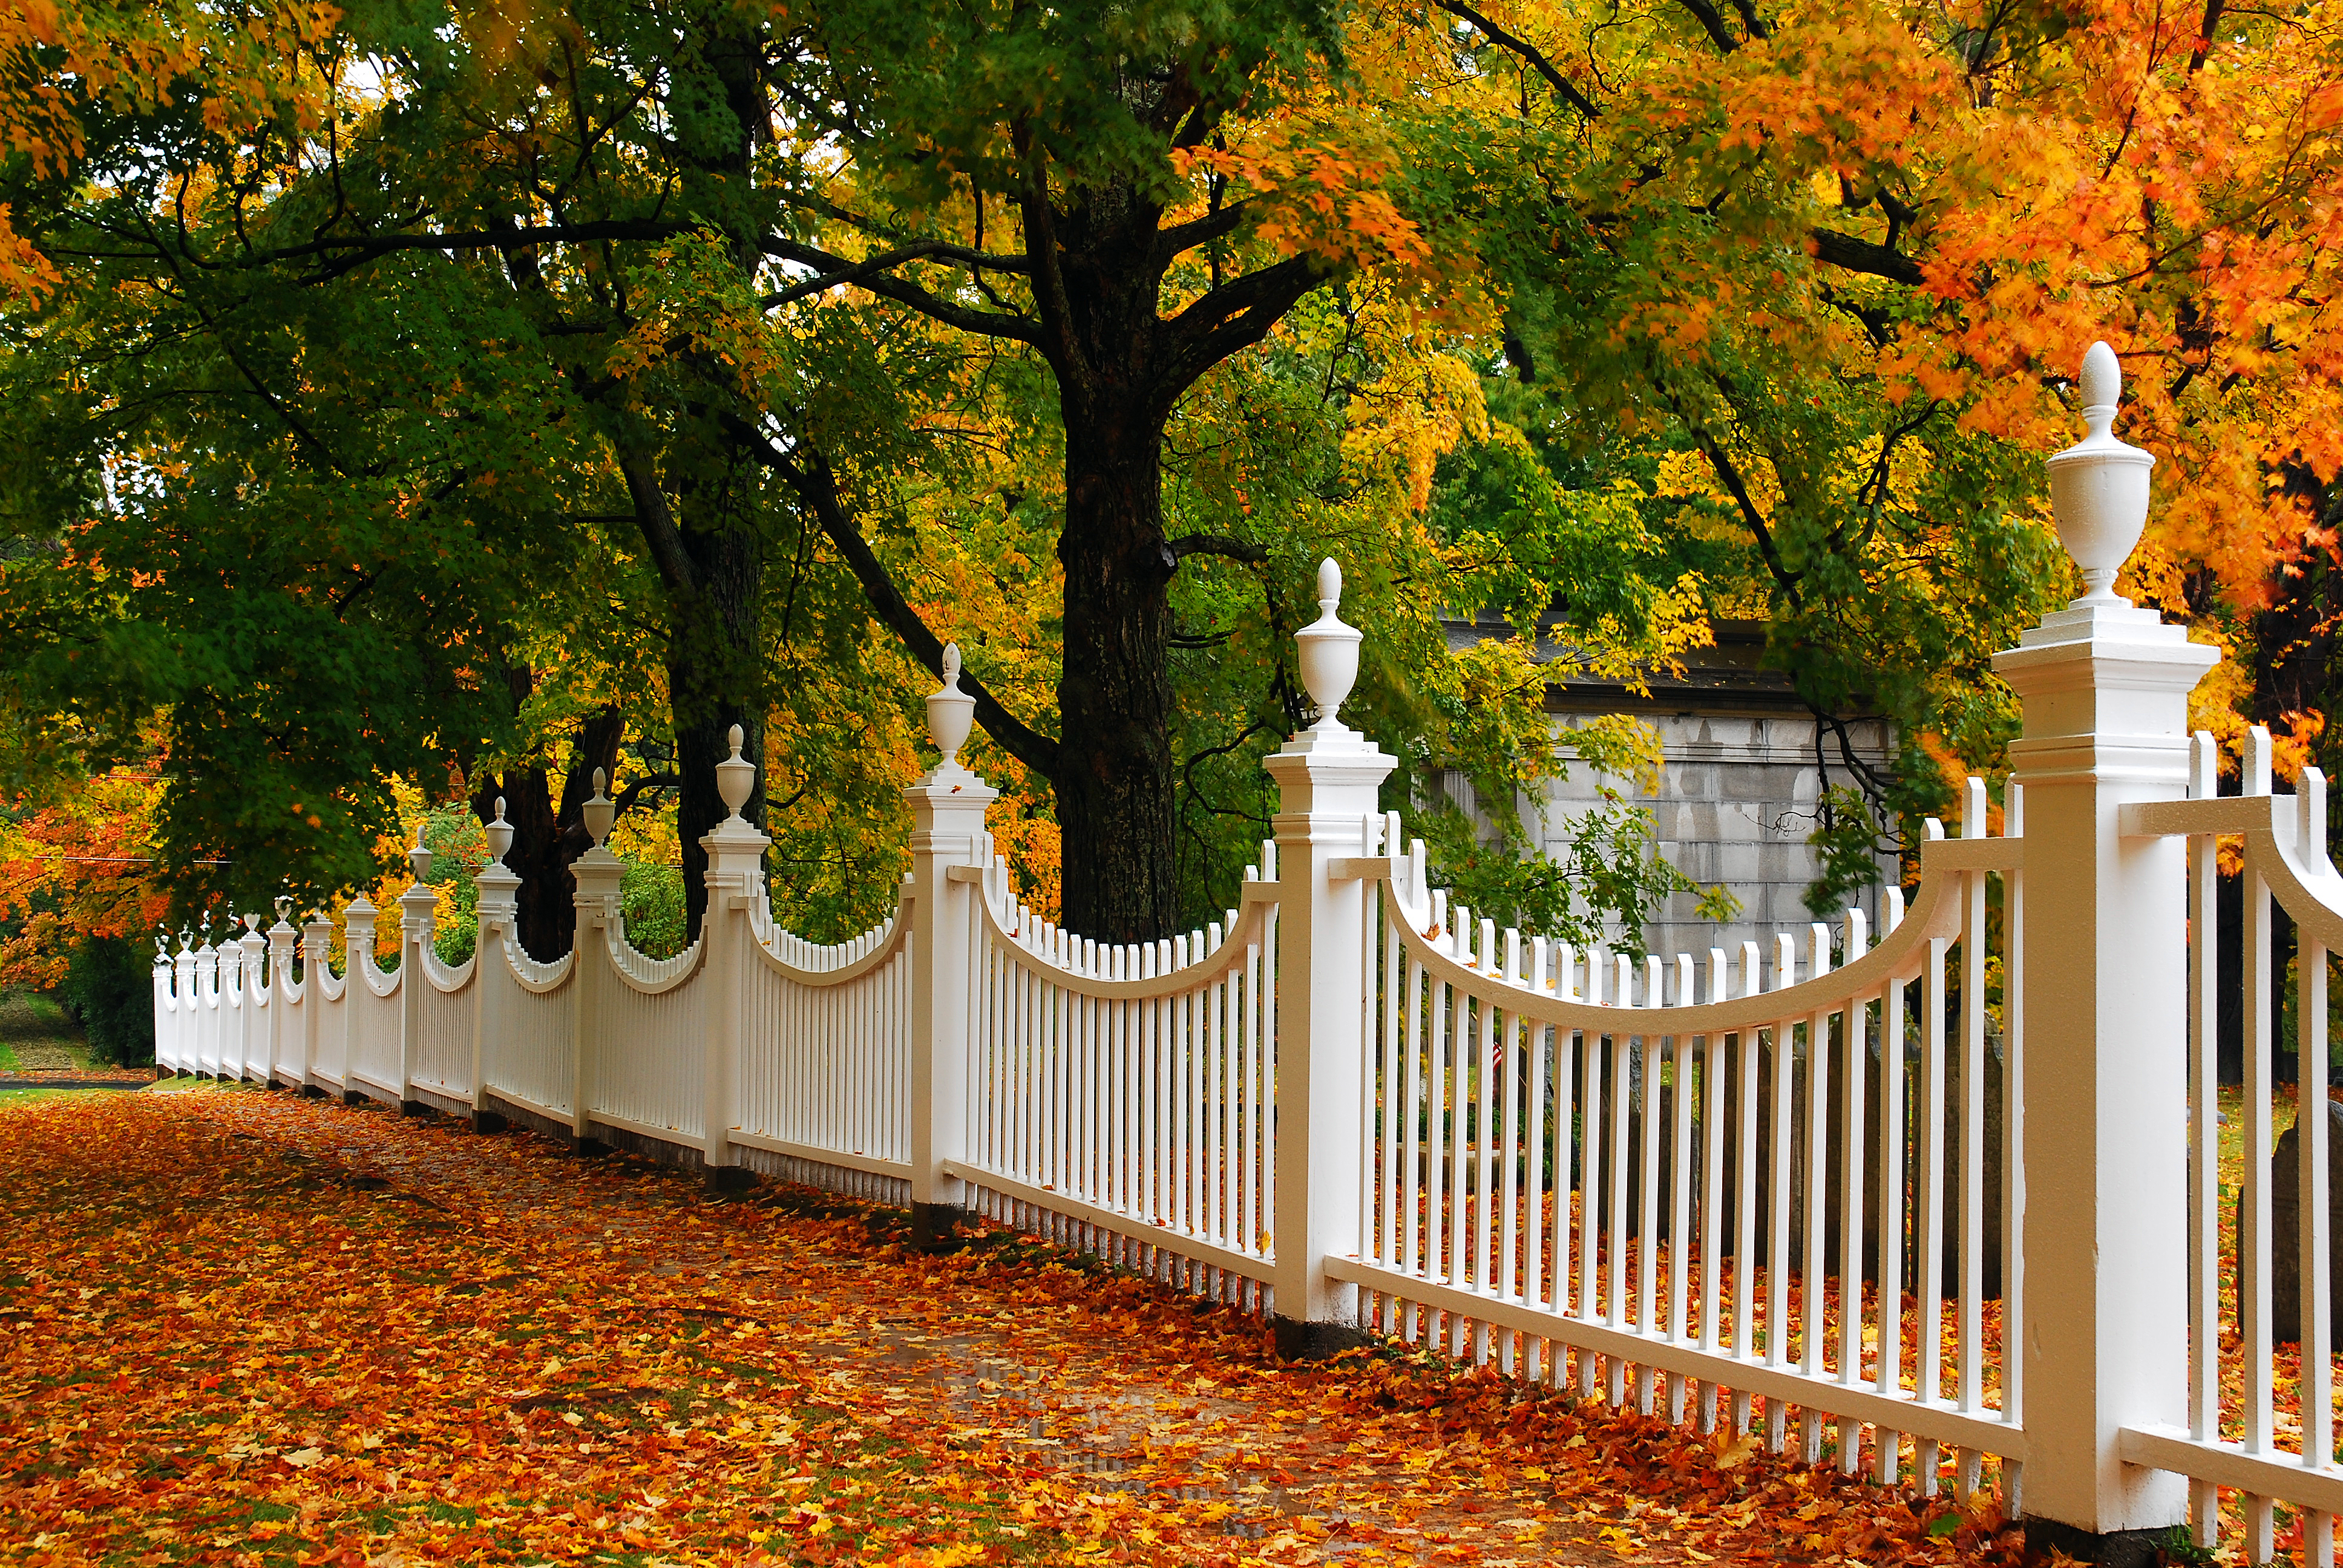 What Is the Standard Size of a Gate in a Fence? | Hunker